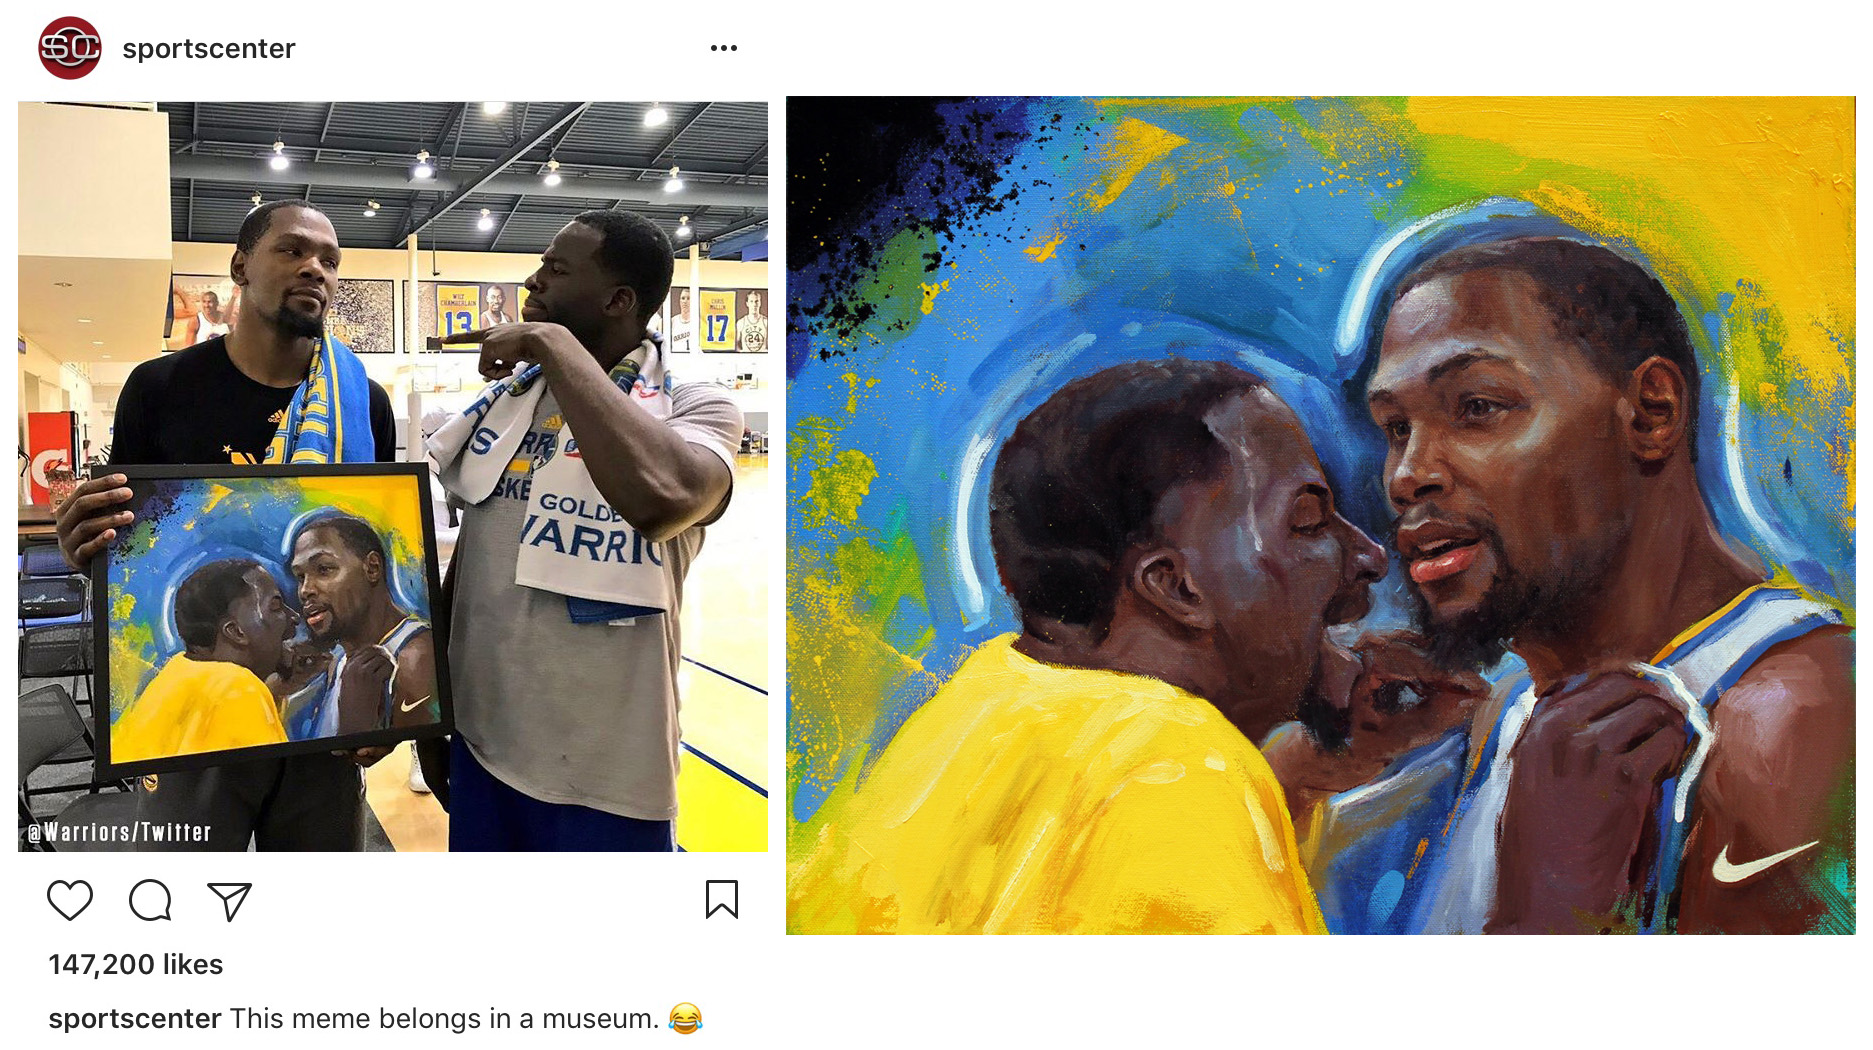 Social Media campaign for Nike NBA and space150 / Overnight portraits of NBA playoff moments / Kevin Durant and Draymond Green meme, 2017